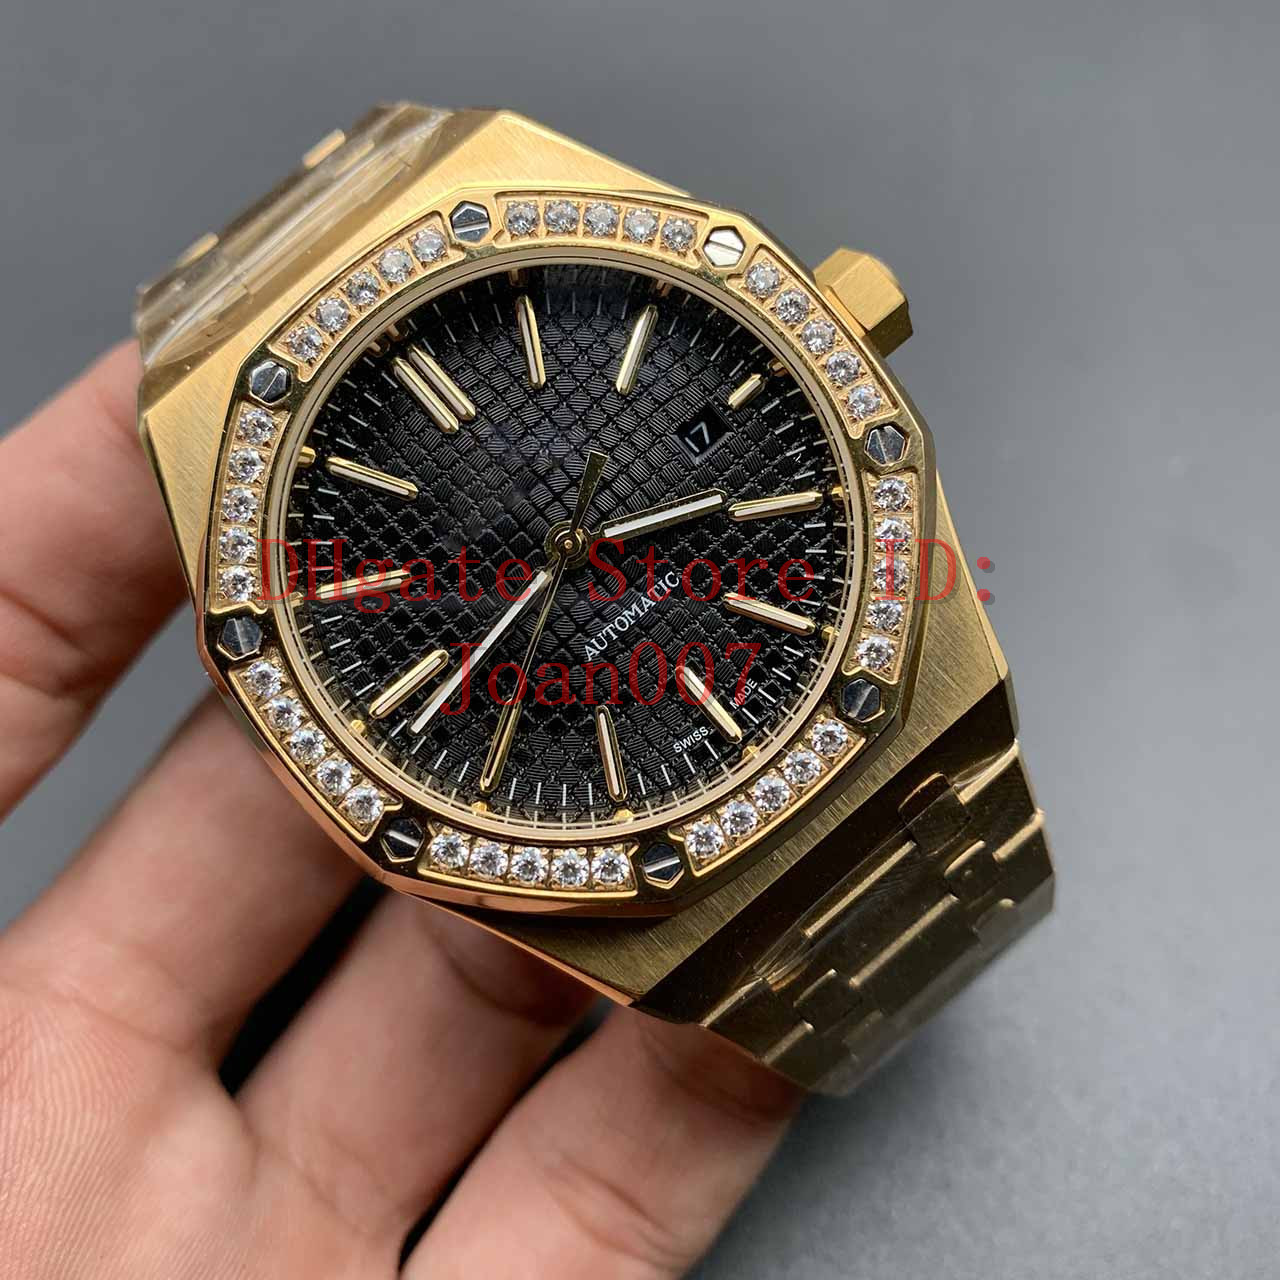 Popular Wathes Christmas 2020 Discount Watches Christmas | Watches Christmas 2020 on Sale at